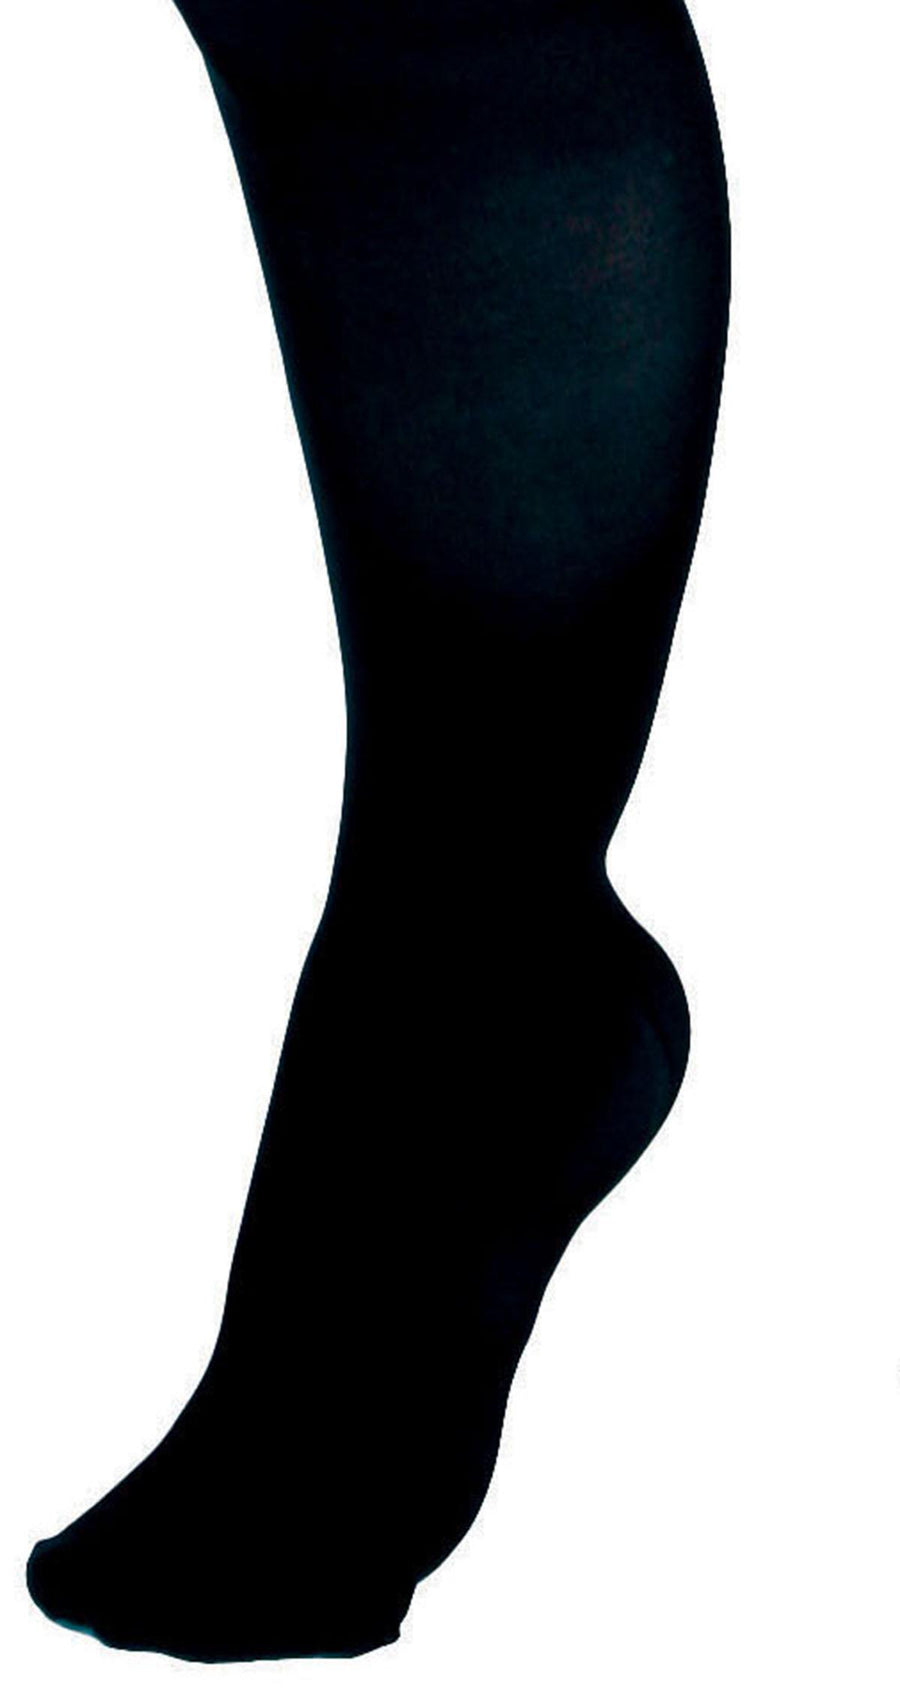 CURAD Knee-High Compression Hosiery, Black, D, Regular, Each